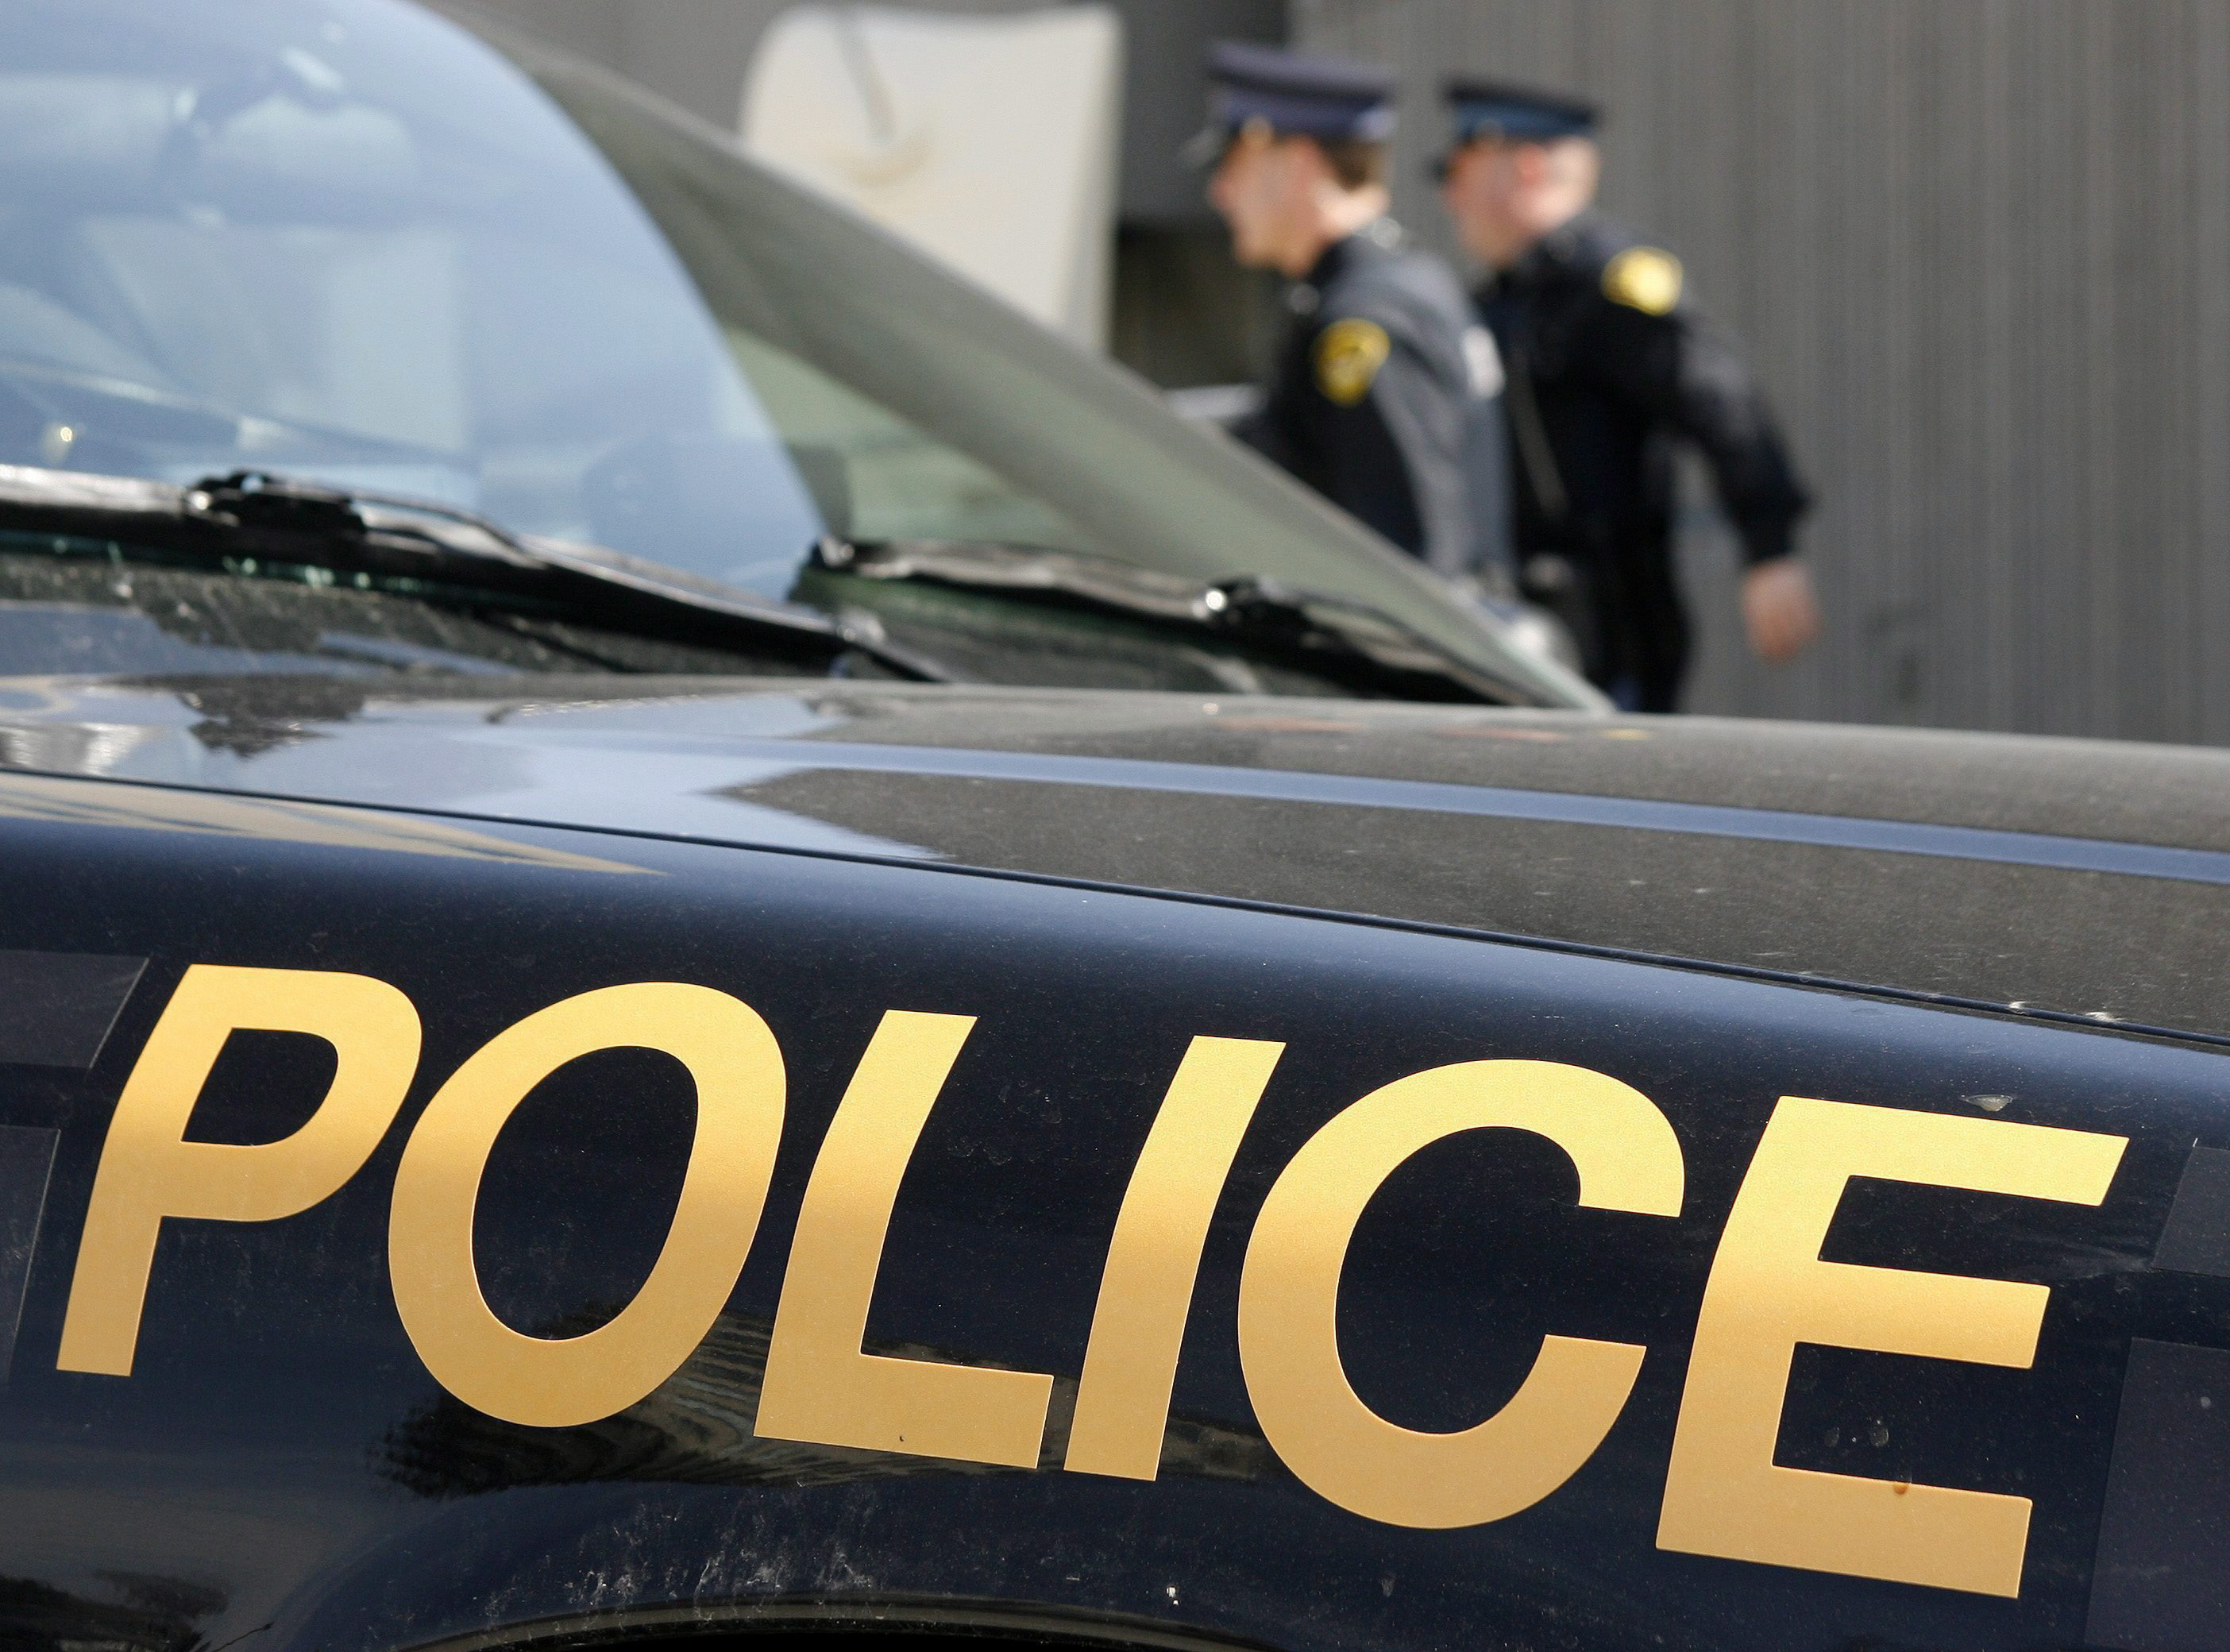 OPP alert businesses after string of ATM thefts in region